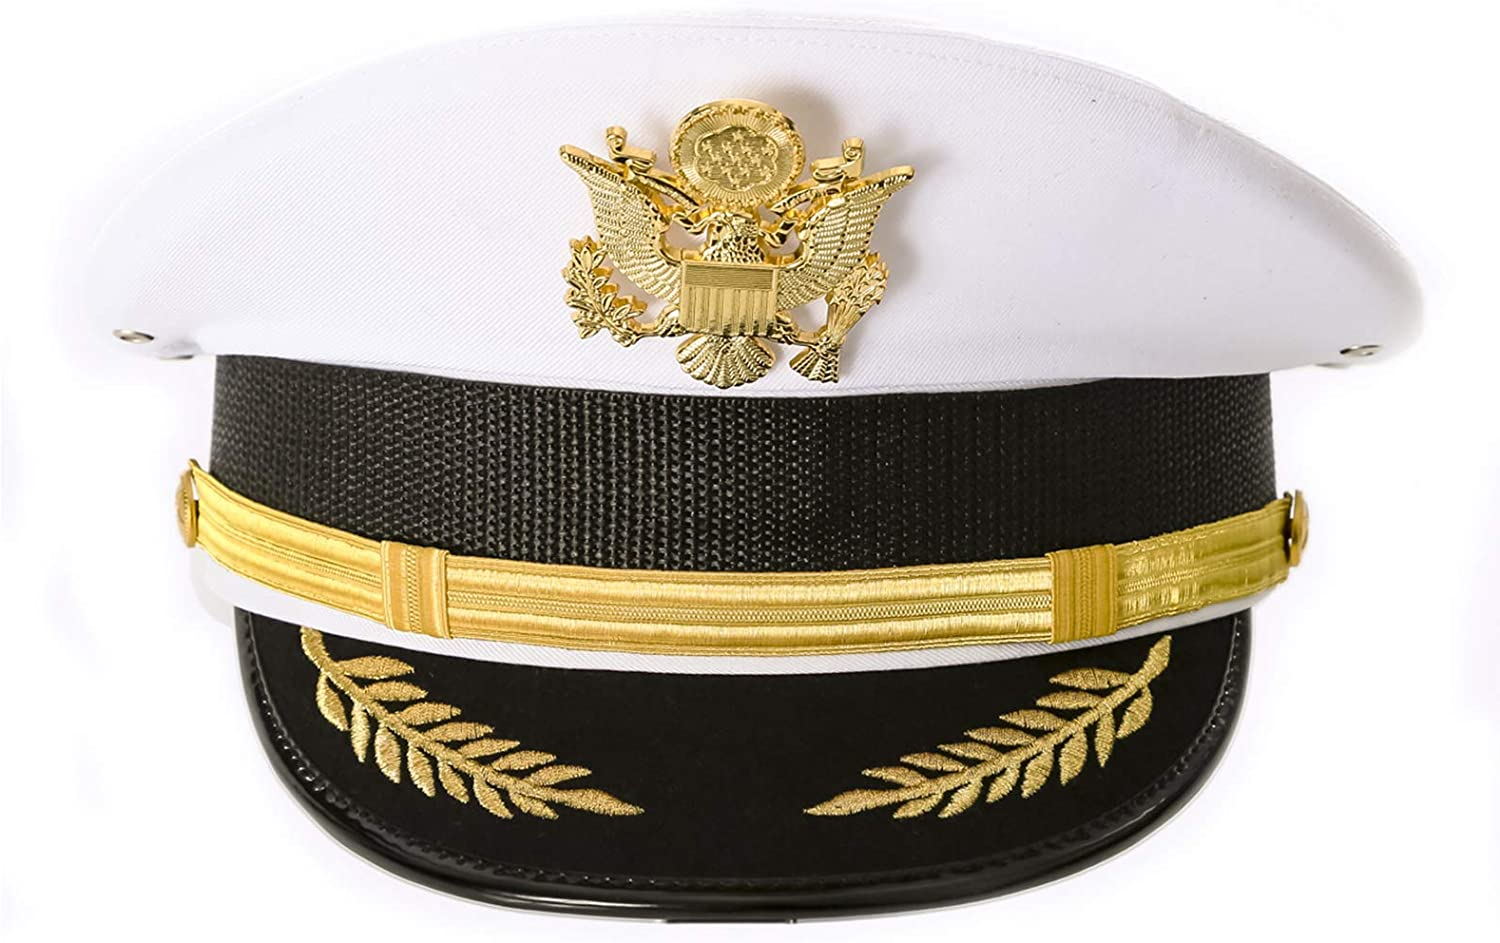 Unisex Military Cadet Captain Sailor Yacht Hat with Gold Metal US Seal